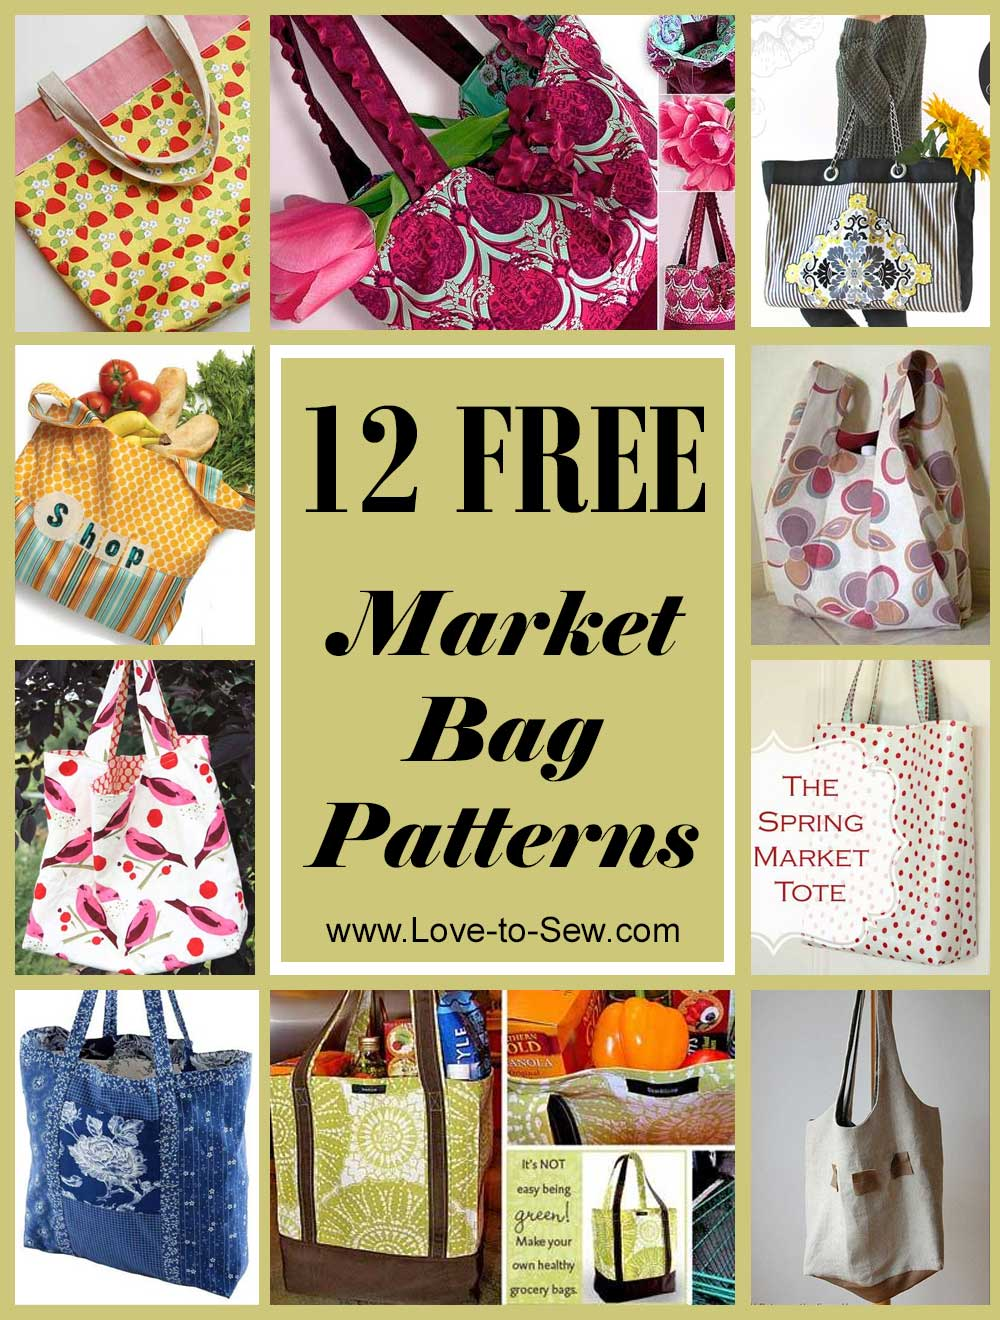 15 Free Market Bag Patterns